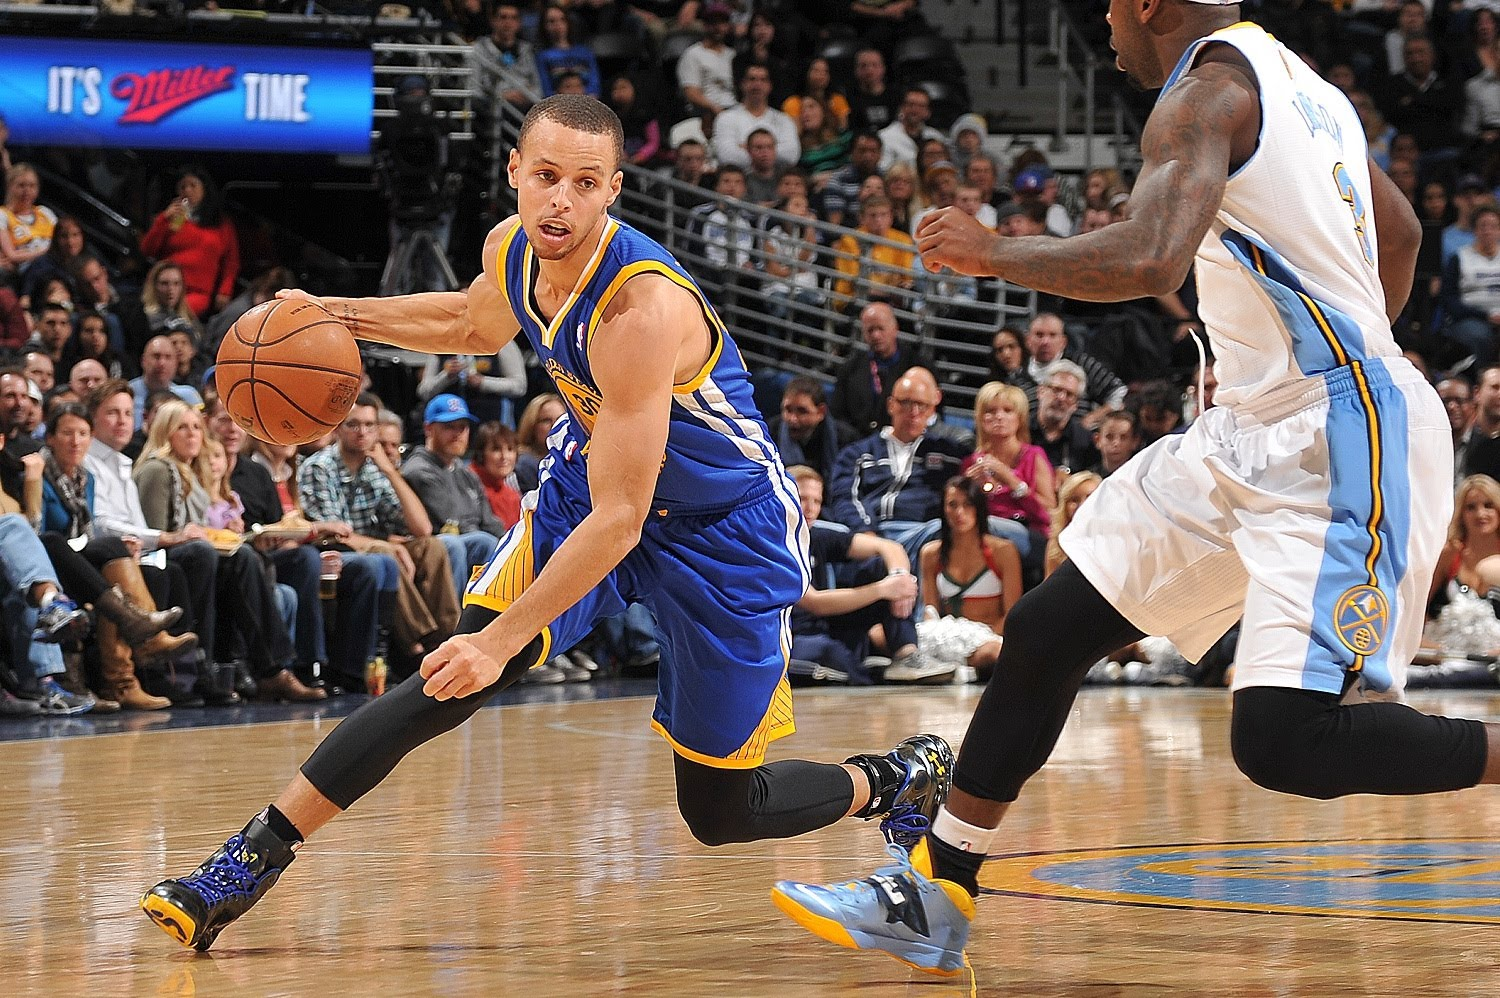 Curry Crossover Dribble